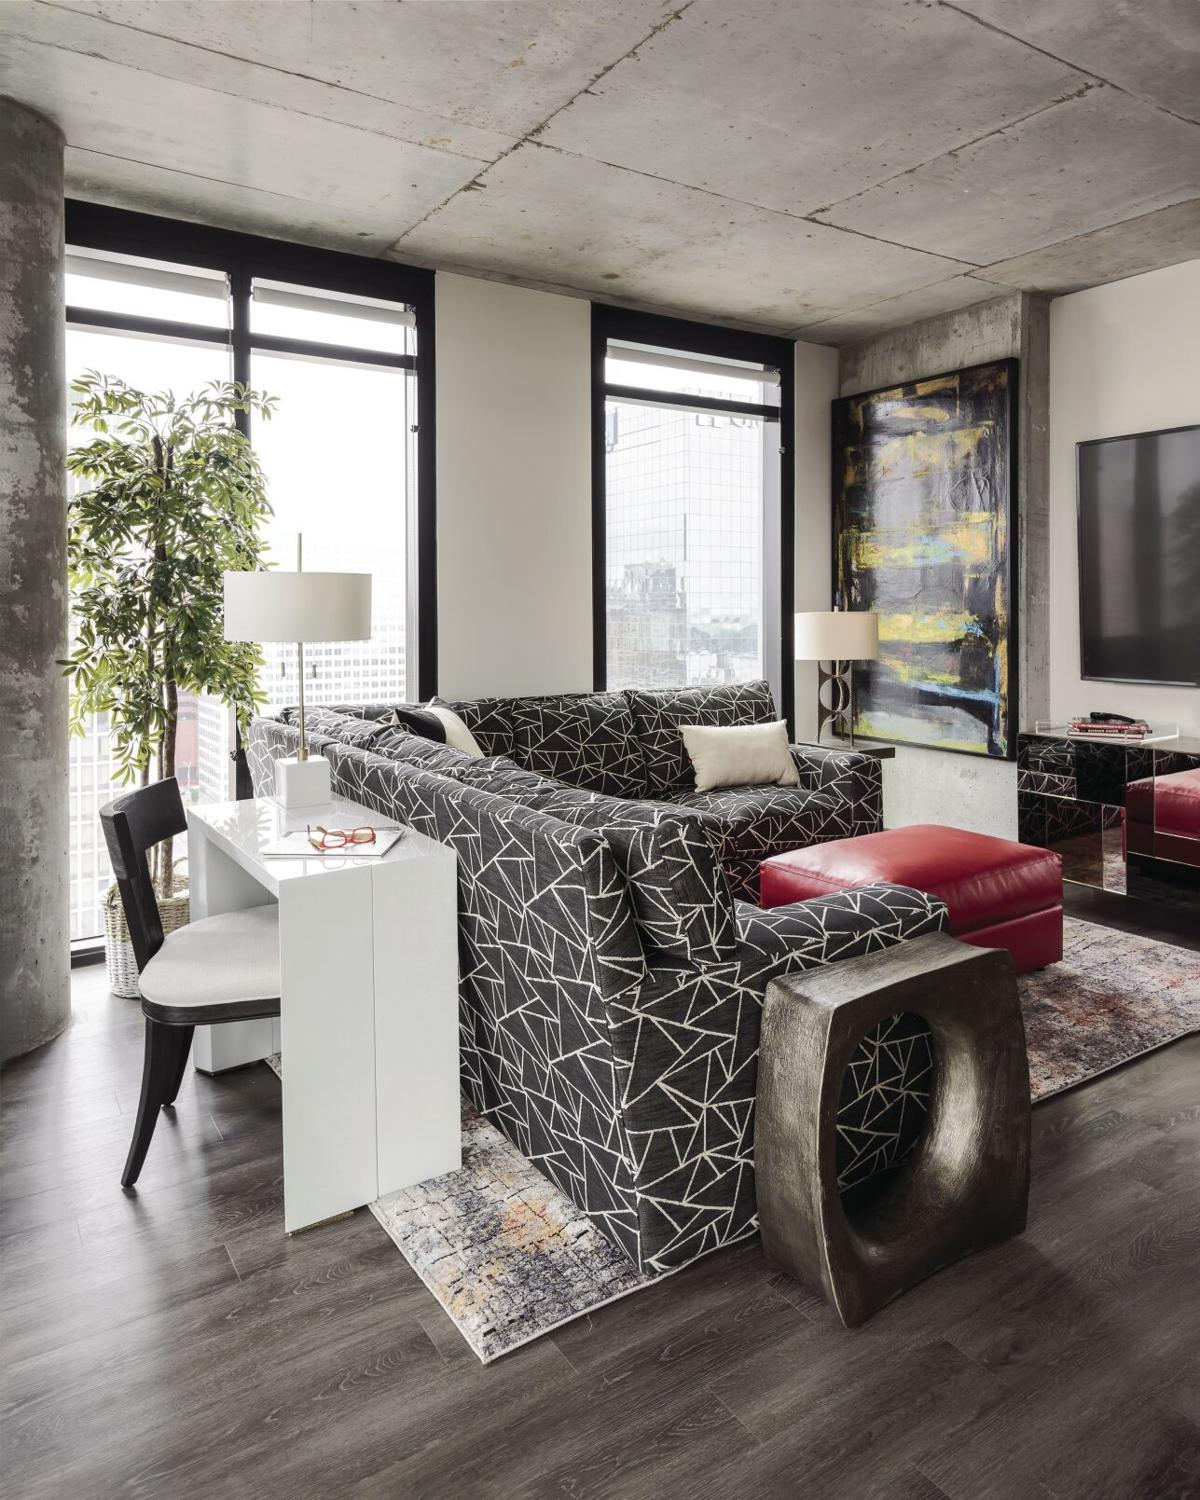 A Work of Art: Luxury Apartment Interior Design by Marcia Moore Showcases Personal Art Collection